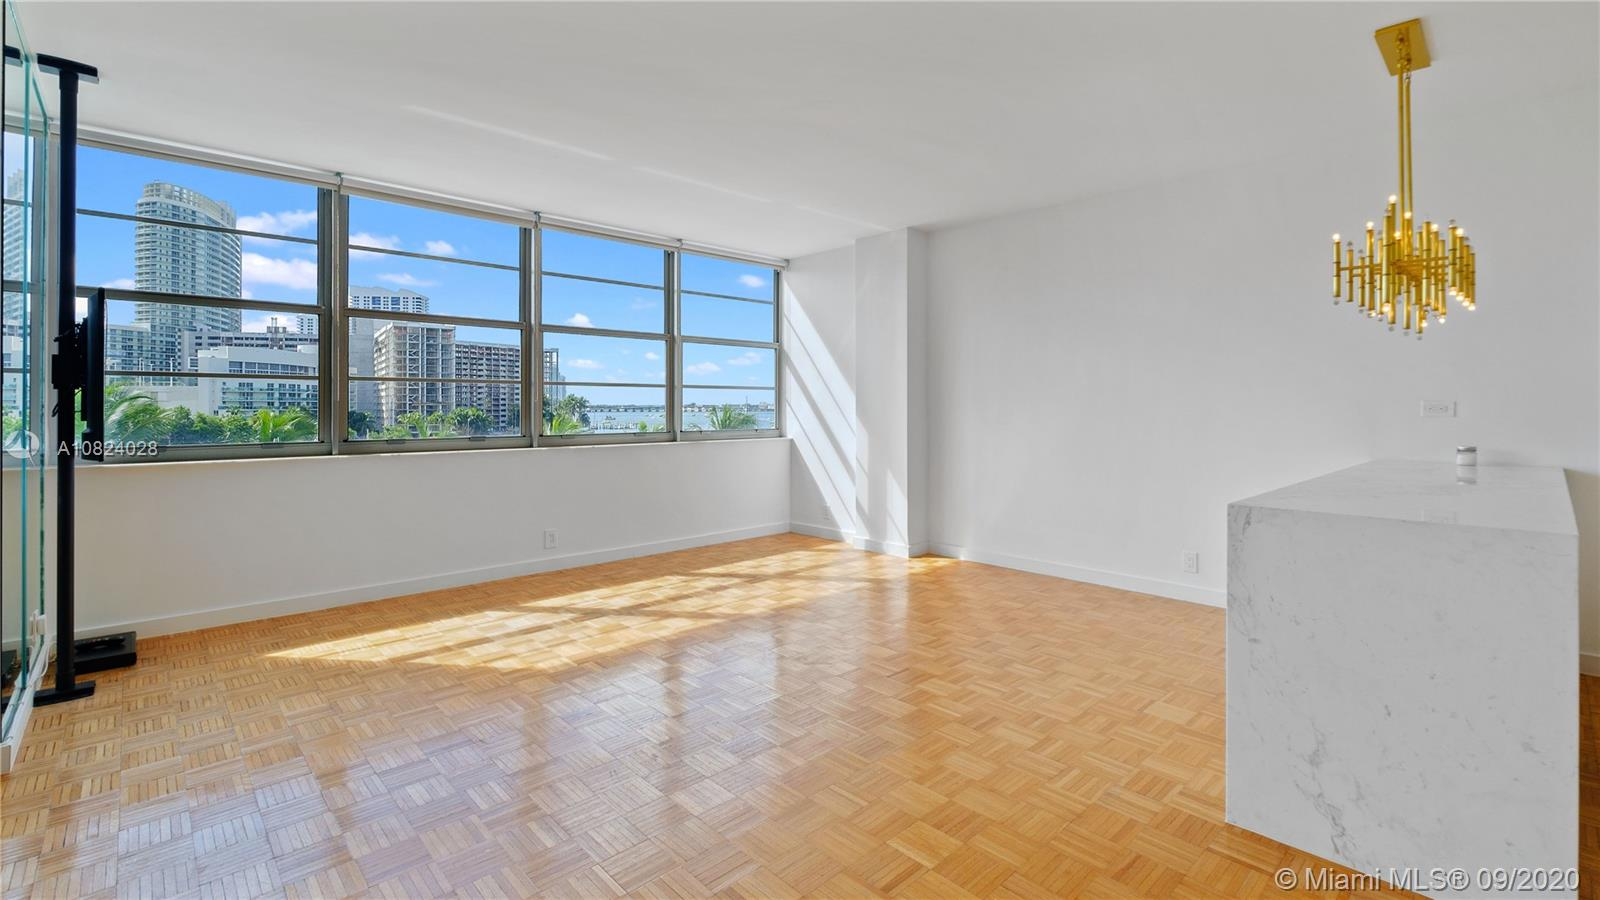 20  Island Ave #415 For Sale A10824028, FL